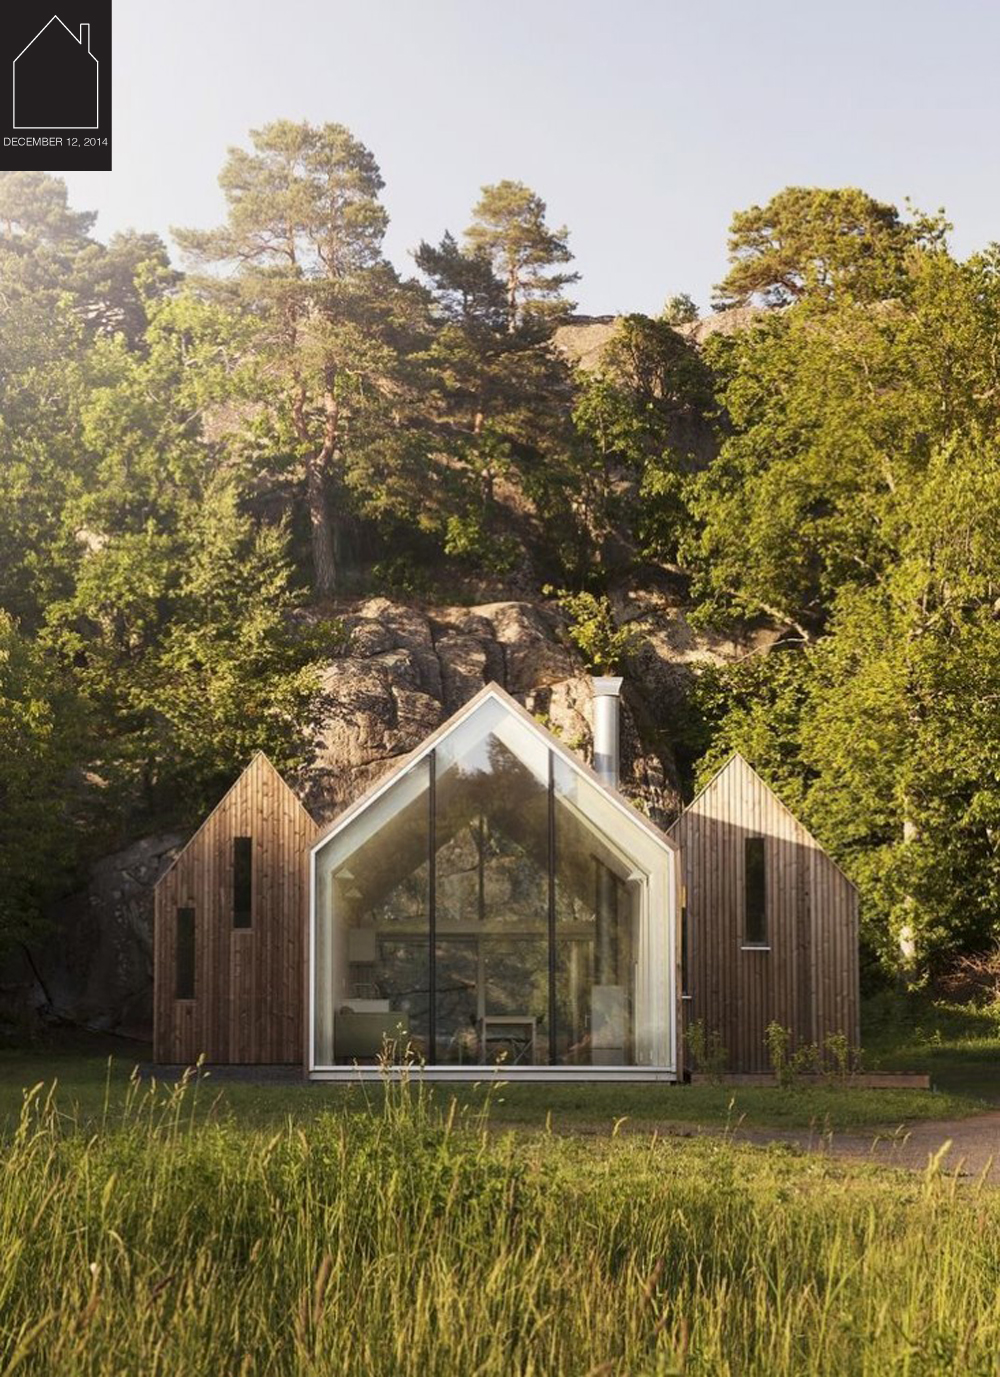 cabins in Norway designed by  Reiulf Ramstad  via  GARDENISTA